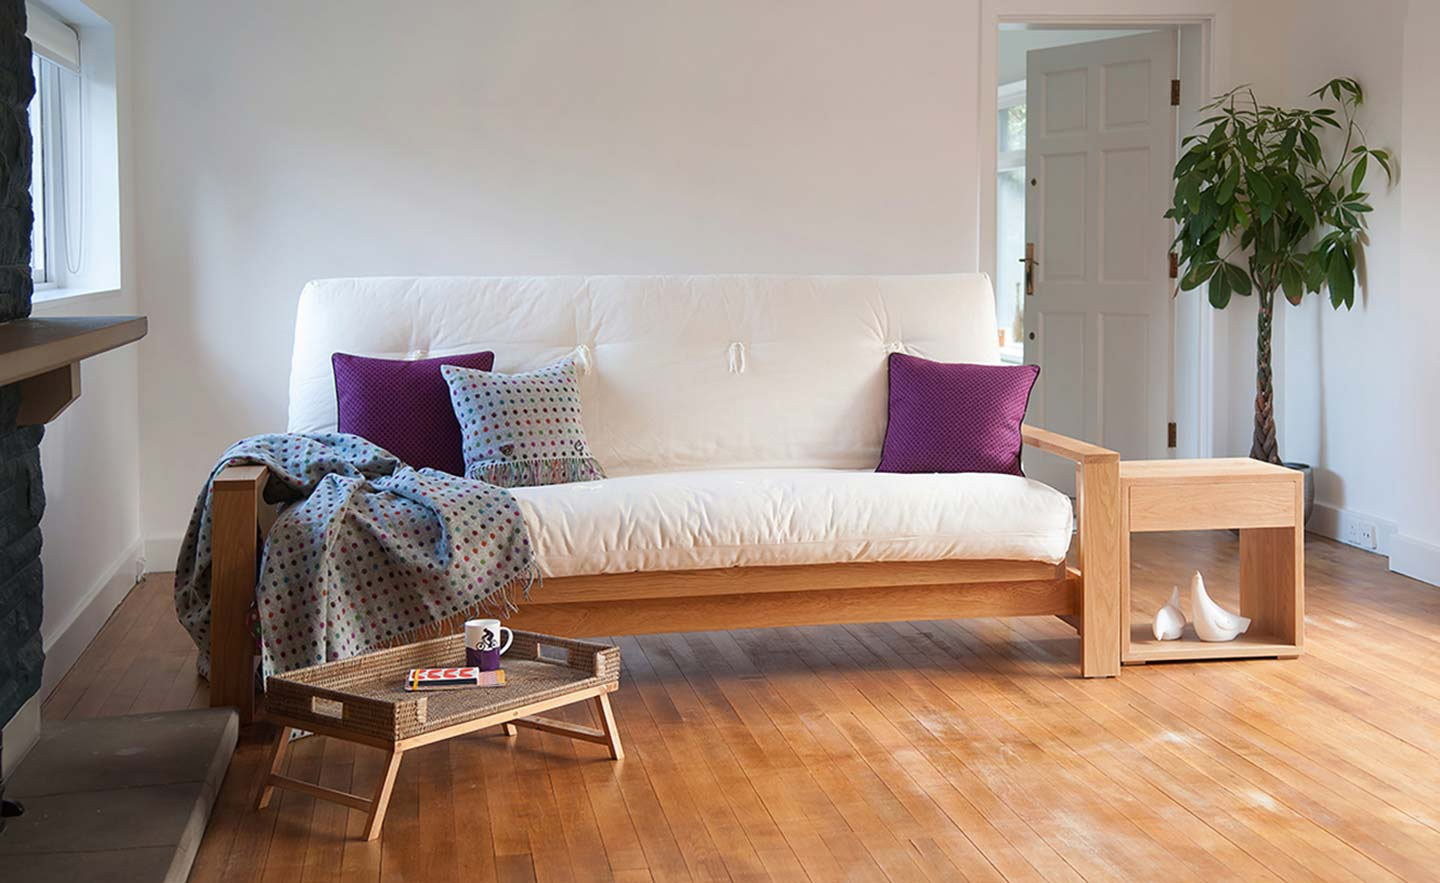 cuba futon sofa bed cuba sofa bed   futon sofa bed collection   natural bed  pany  rh   naturalbed pany co uk